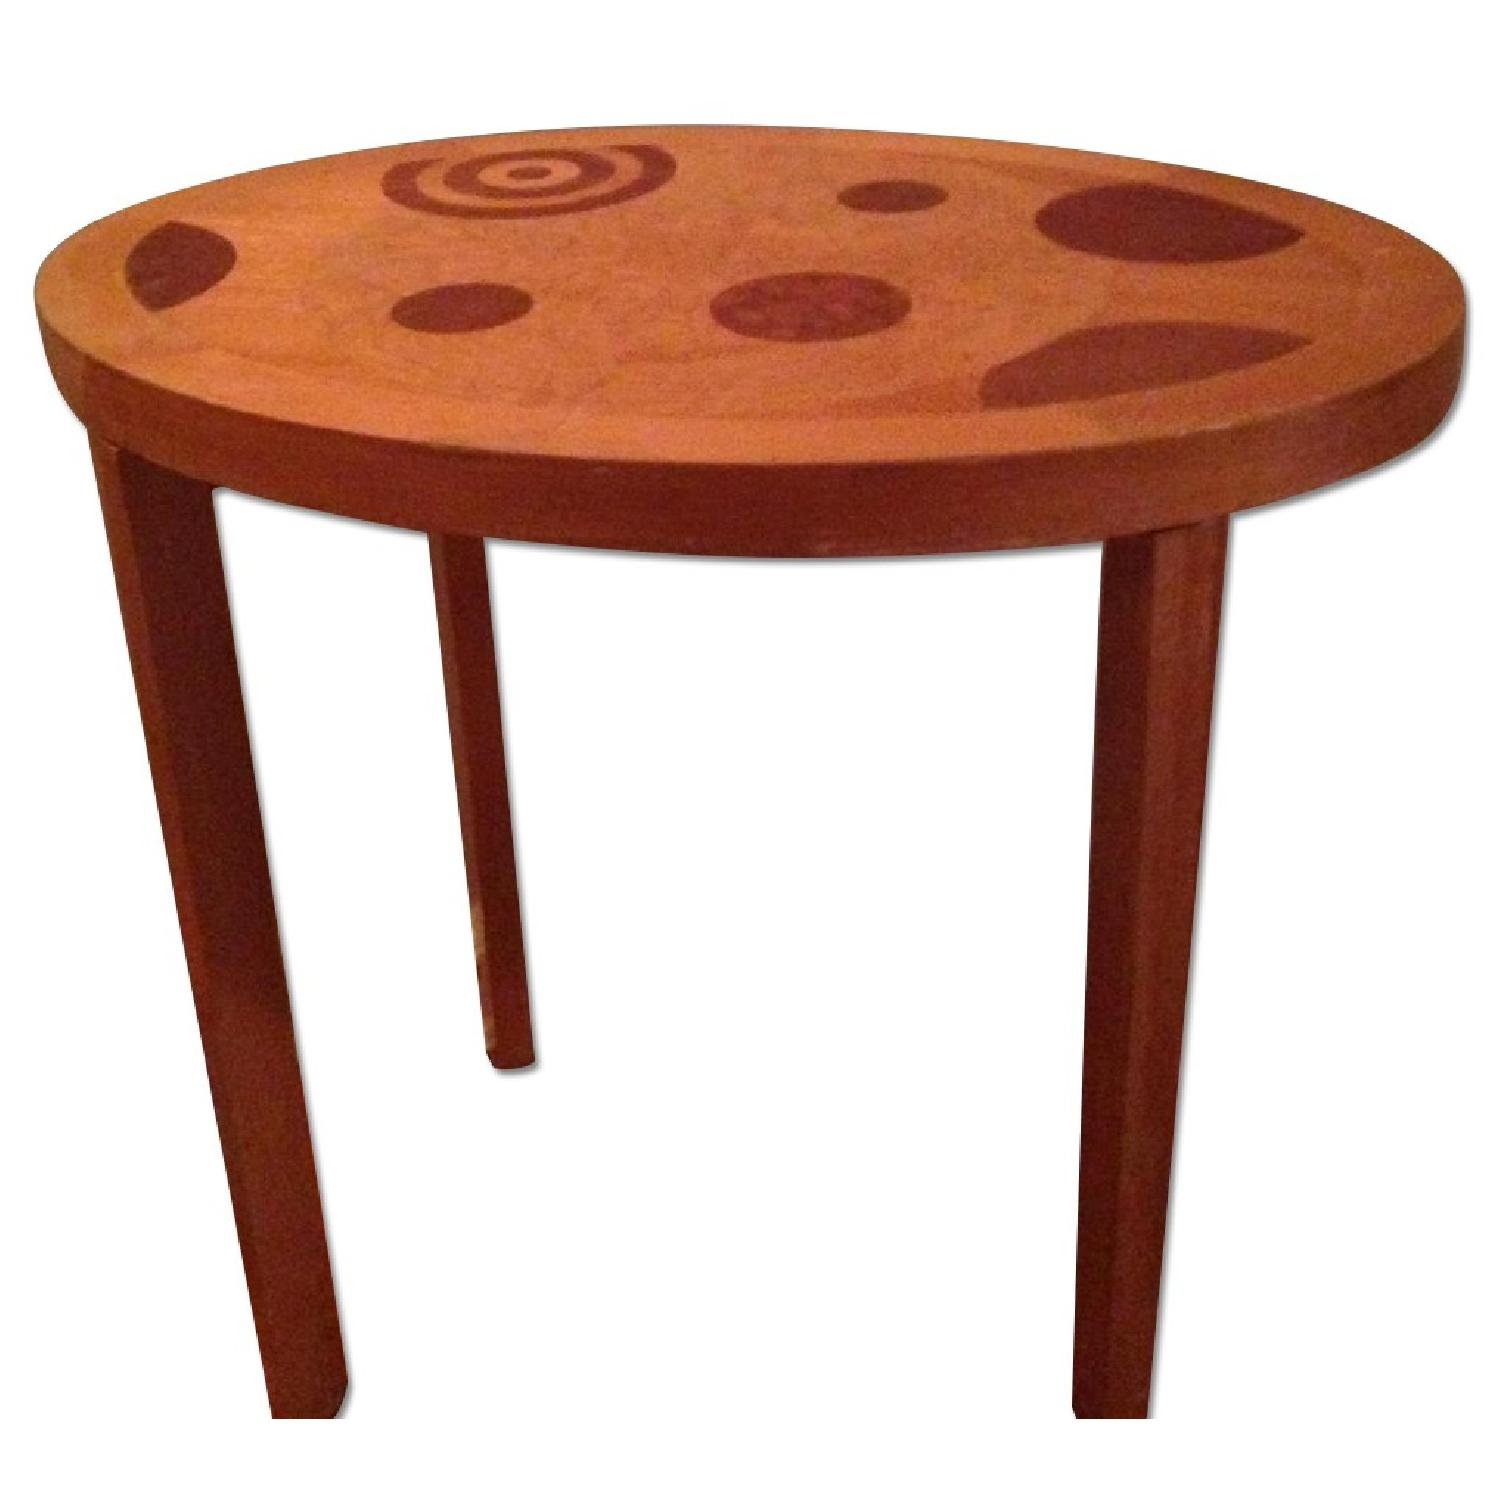 Blond Wood Inlaid Side Table - image-0